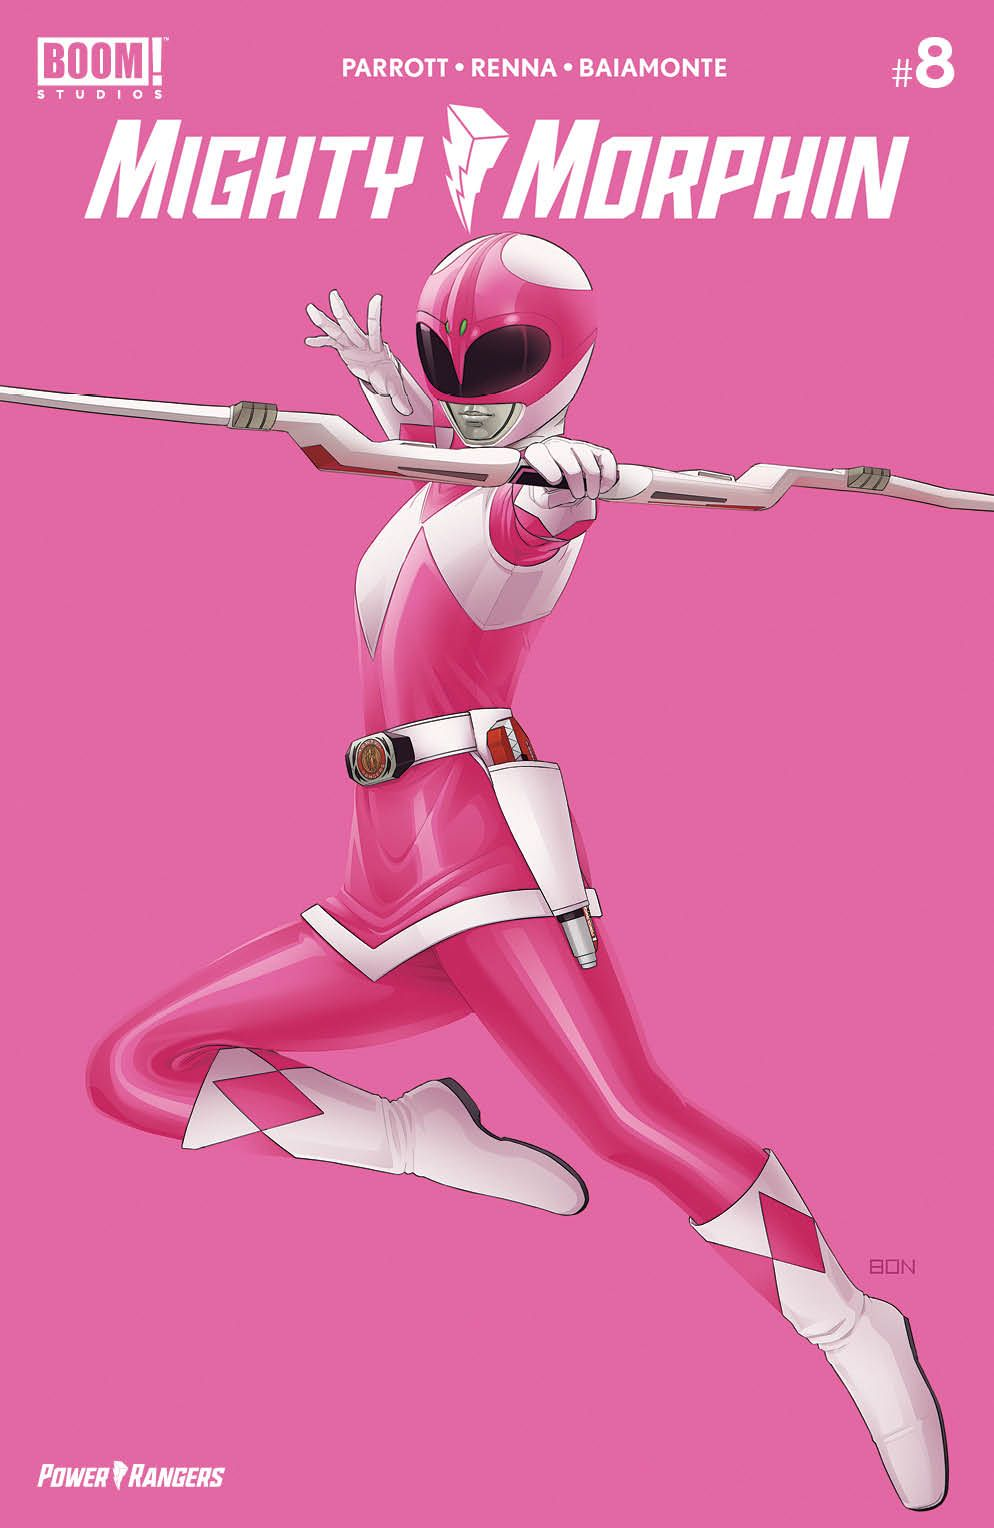 Mighty_Morphin_008_Cover_J_Variant-1 ComicList Previews: MIGHTY MORPHIN #8